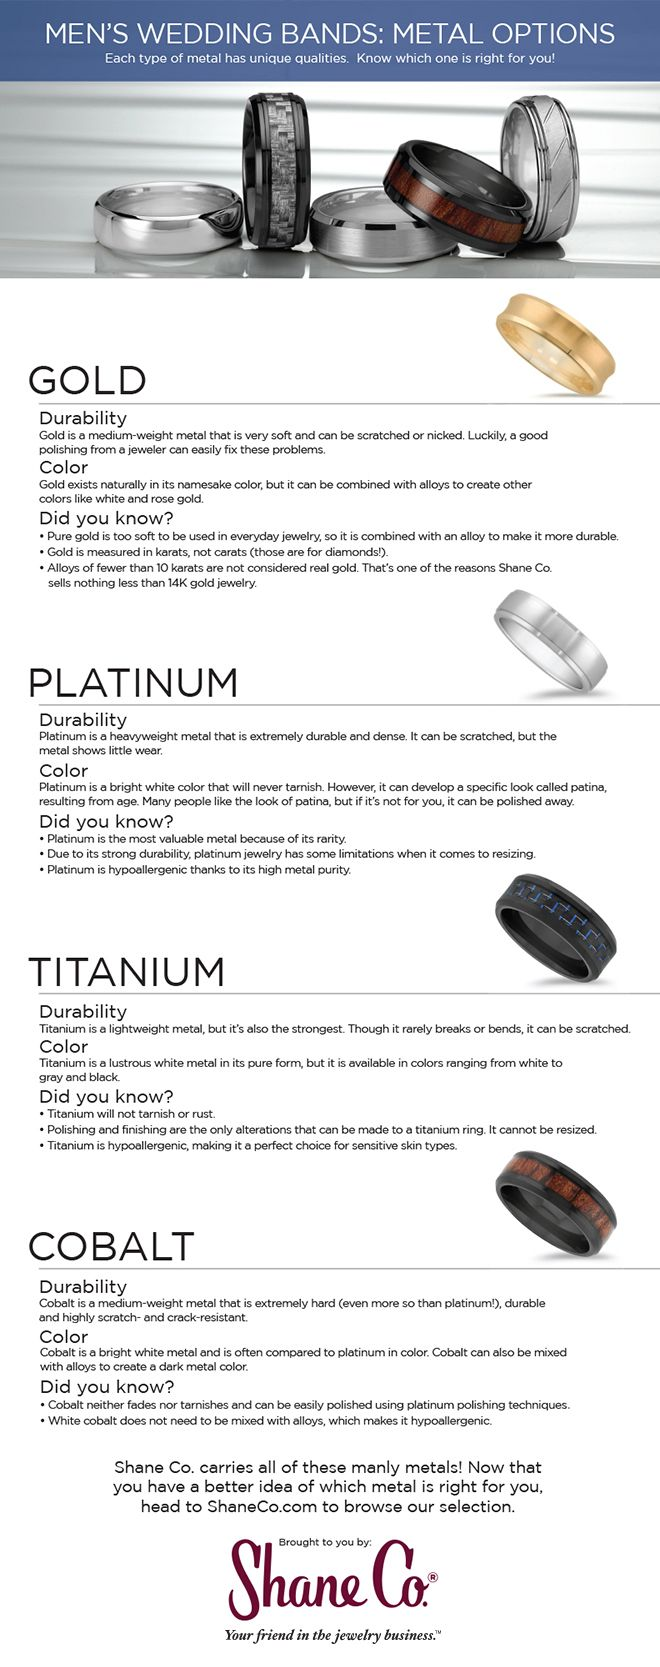 MensMetal_InfoGraphic.indd